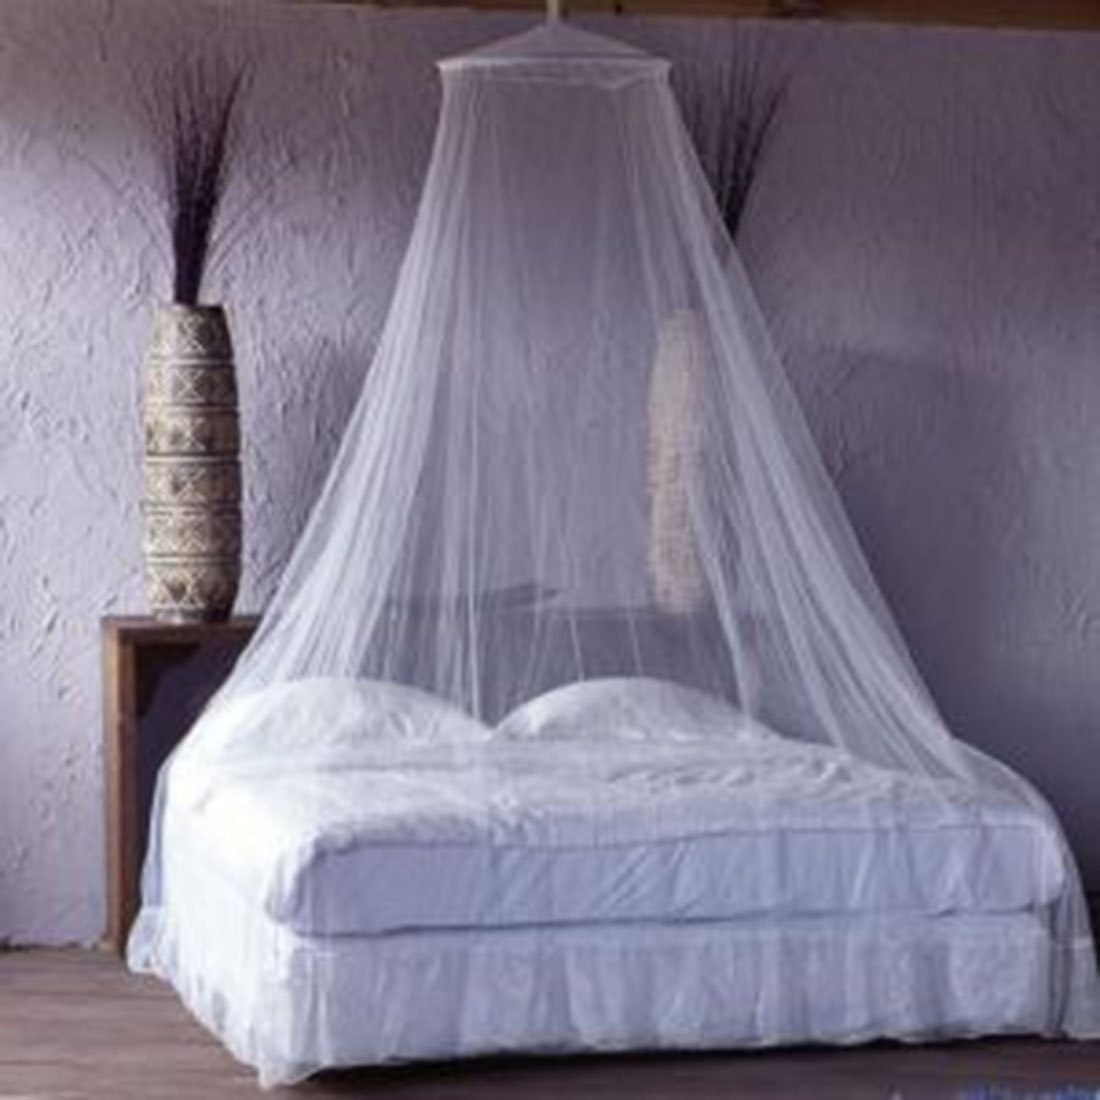 A canopy over a white bed beside some potted plants